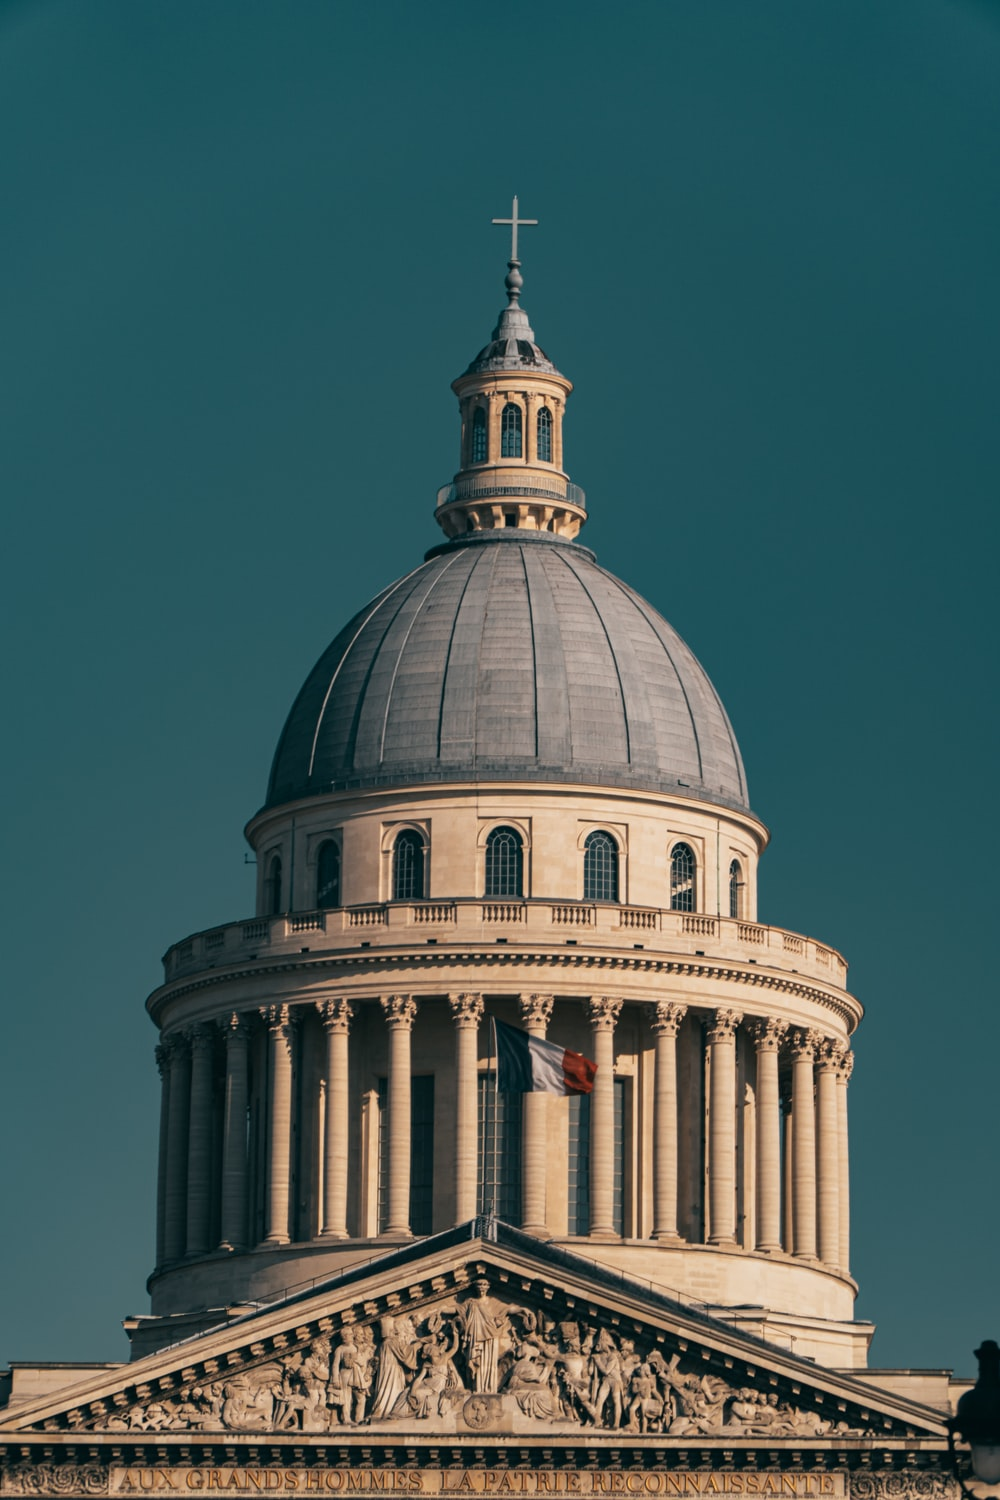 white and blue dome building under blue sky during daytime